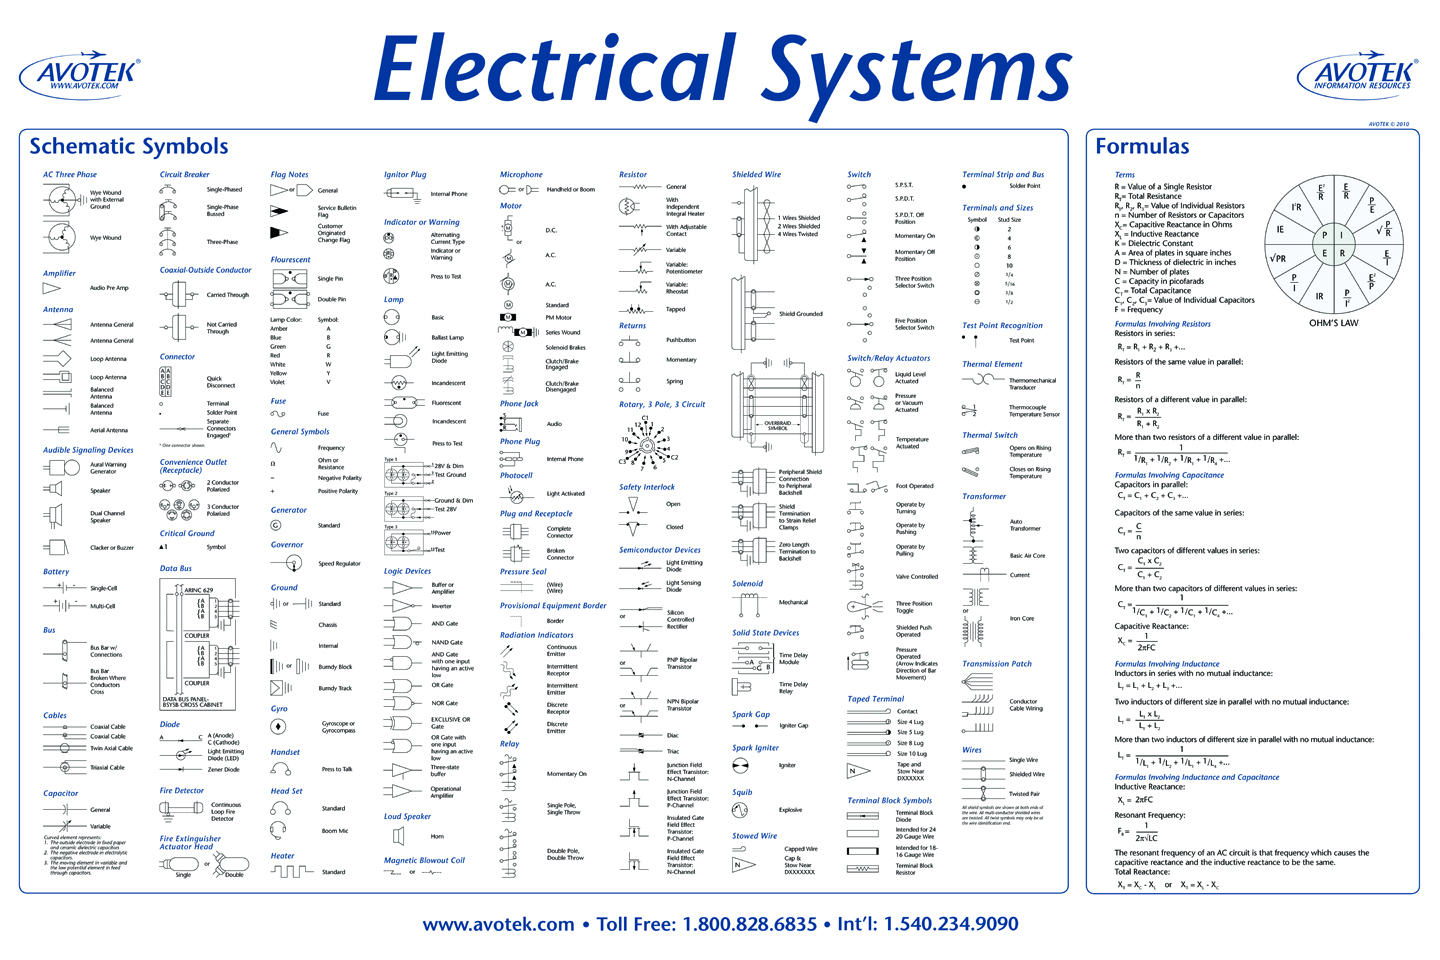 Classroom Poster - Electrical Systems